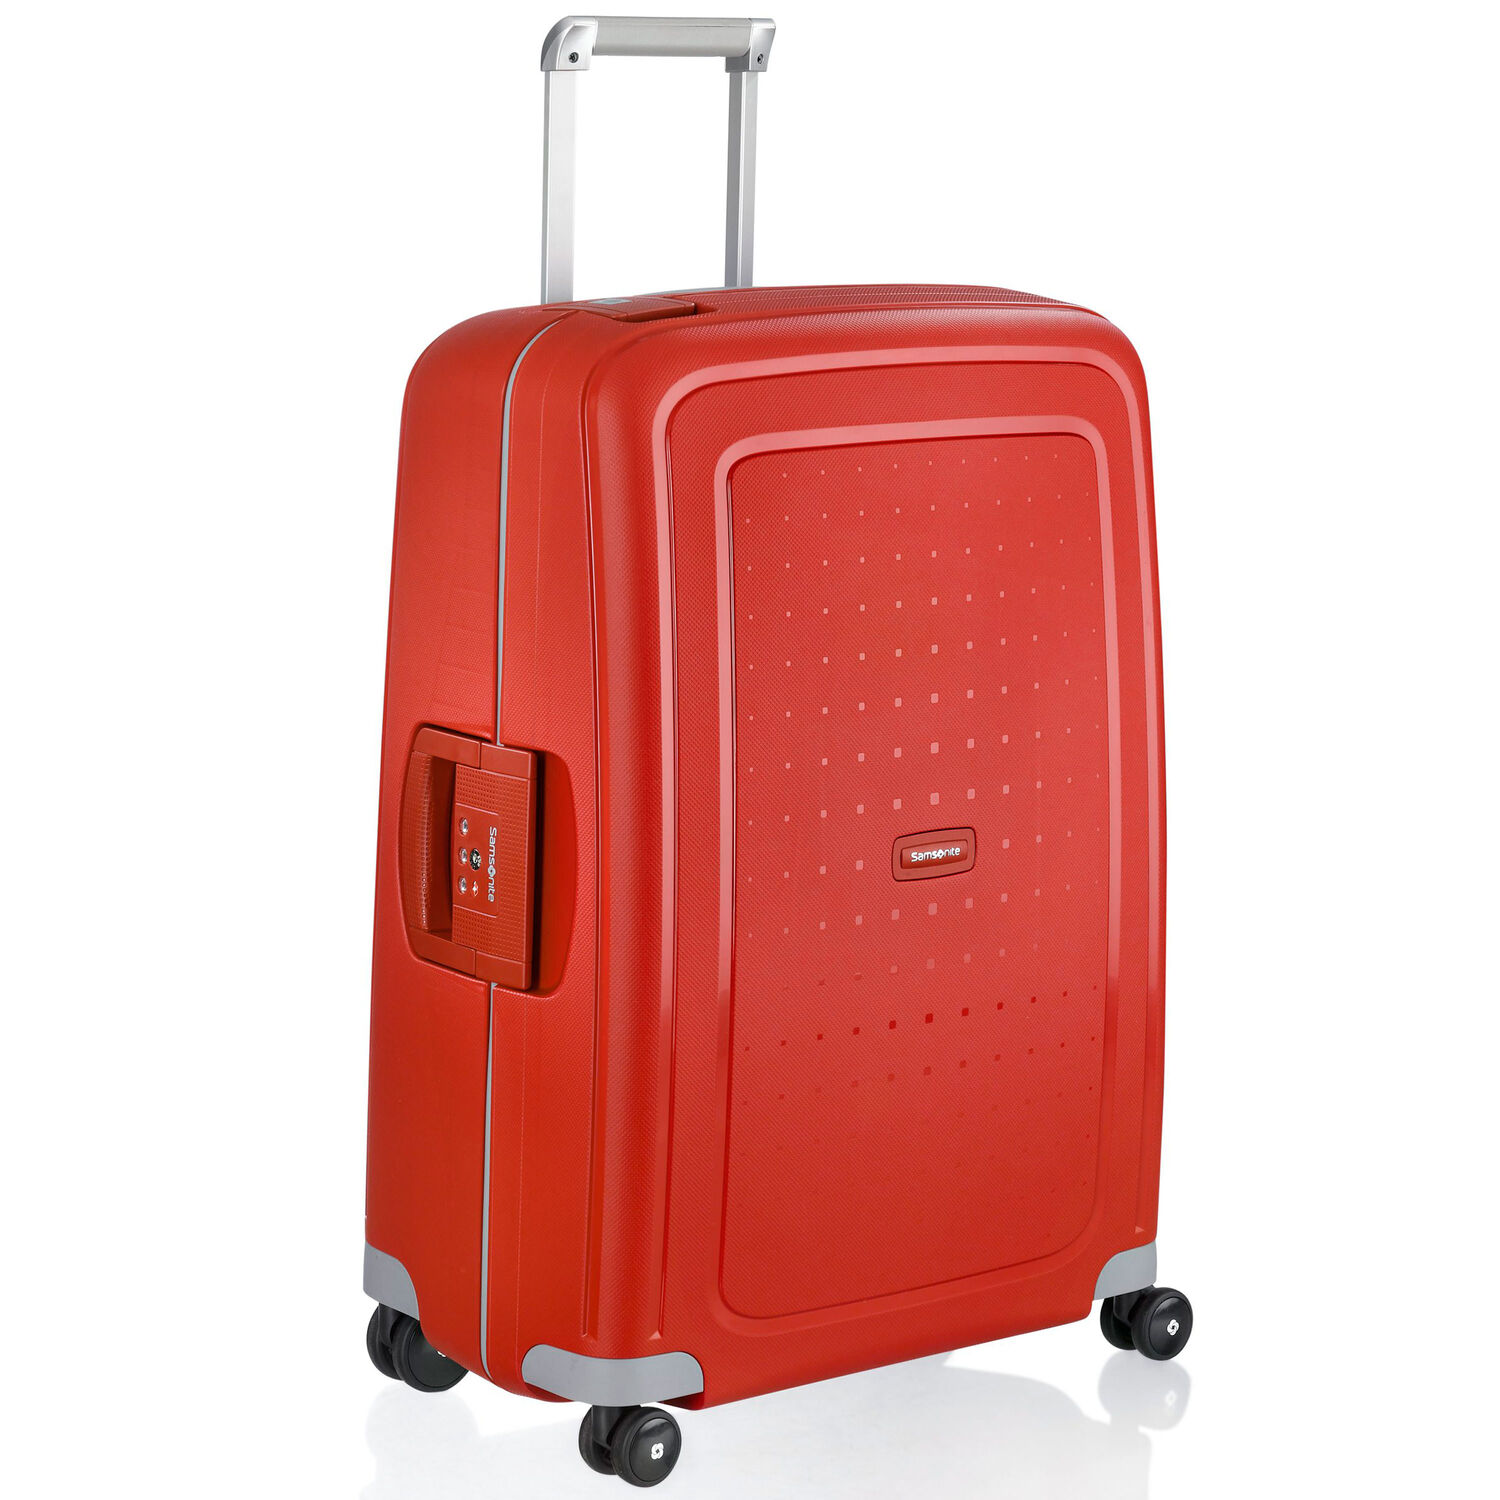 Samsonite S Cure 28 Quot Spinner